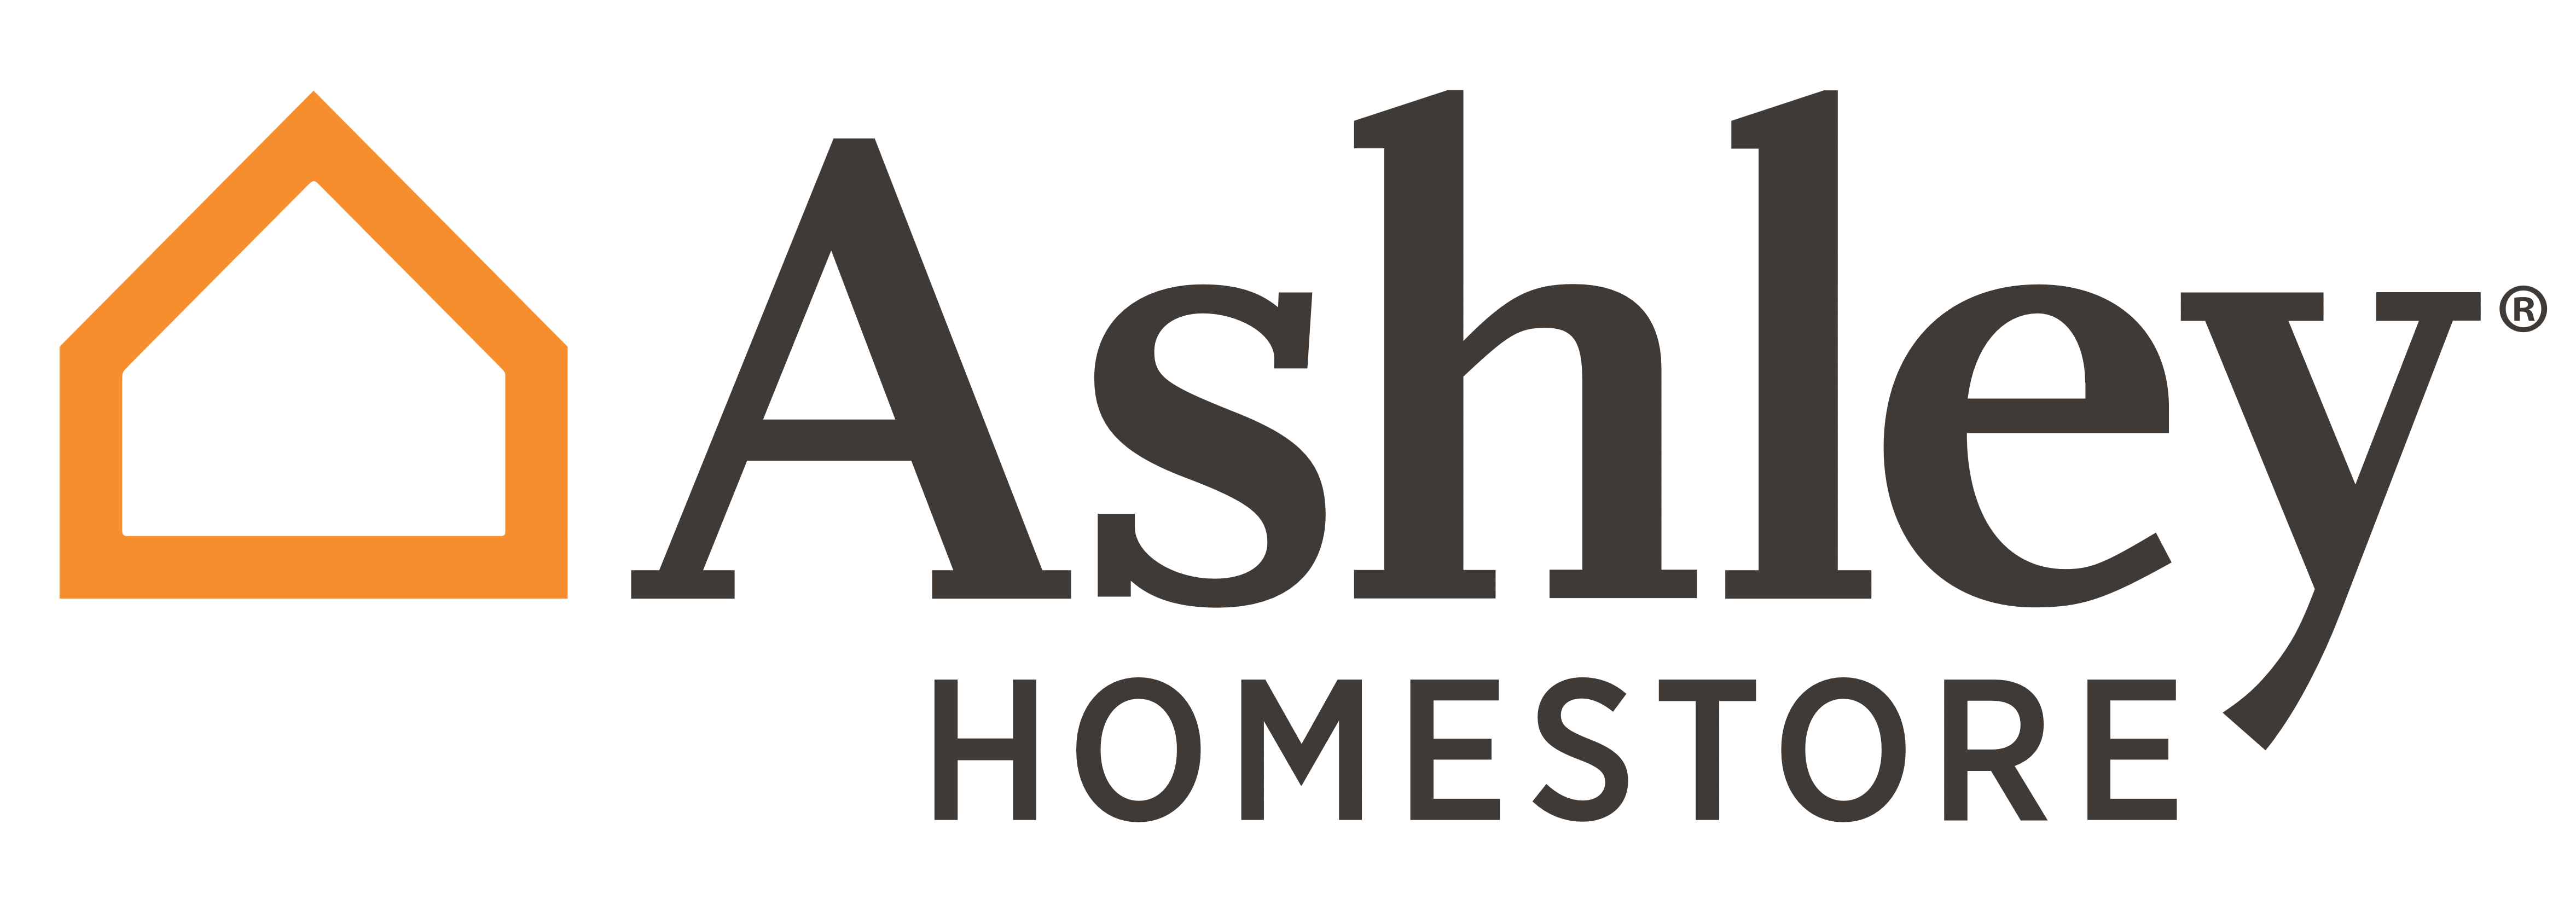 Ashley Homestore logo, logotype - Ashley Furniture Logo PNG